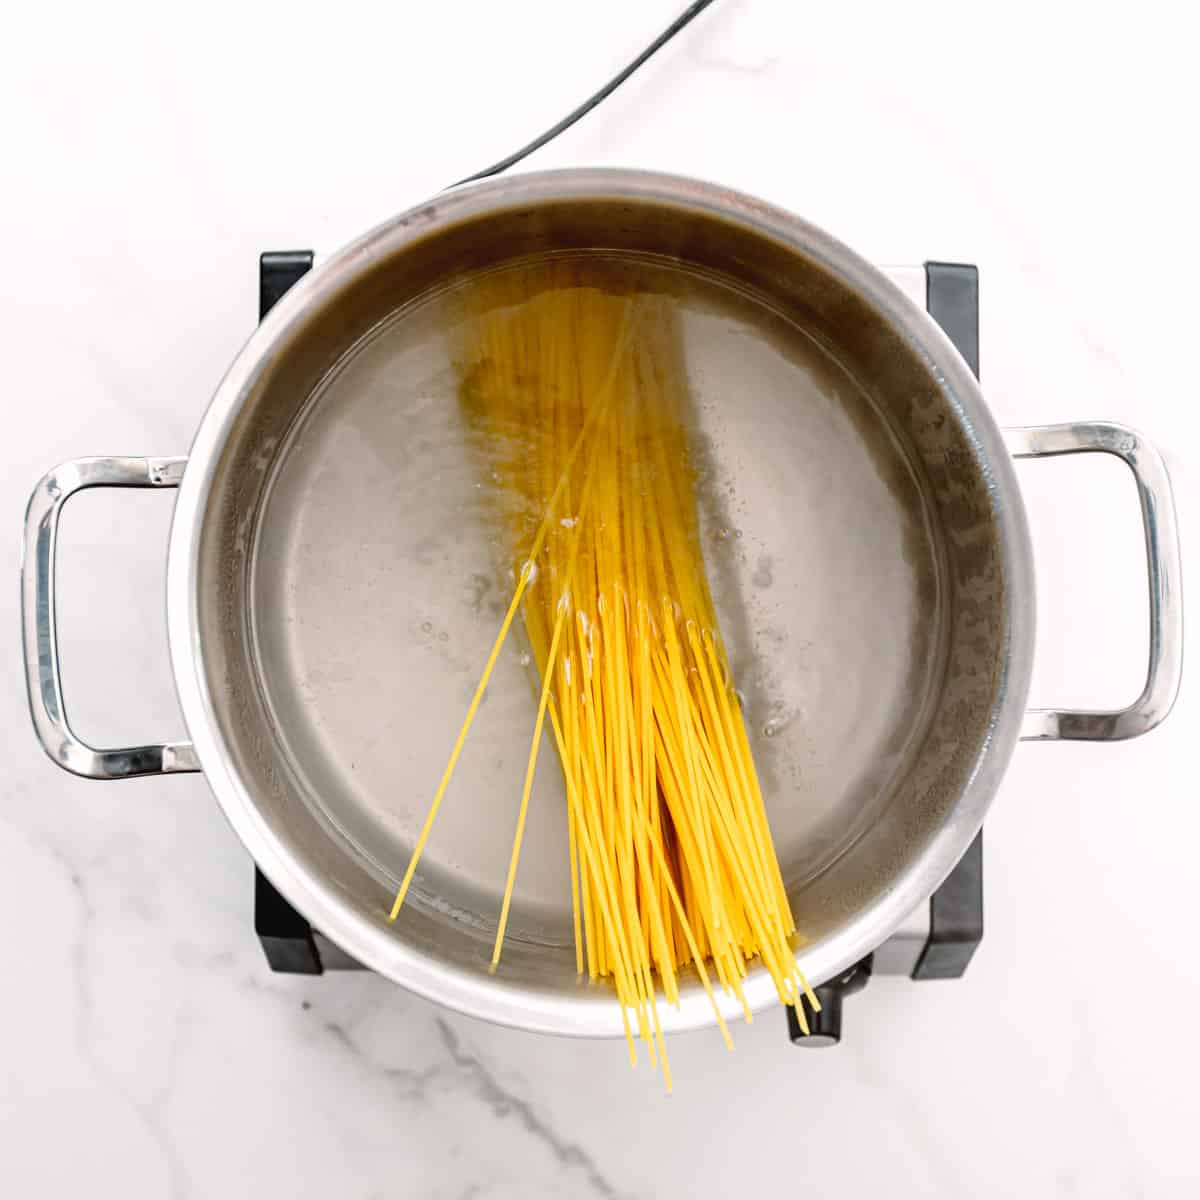 cooking spaghetti in salted water.